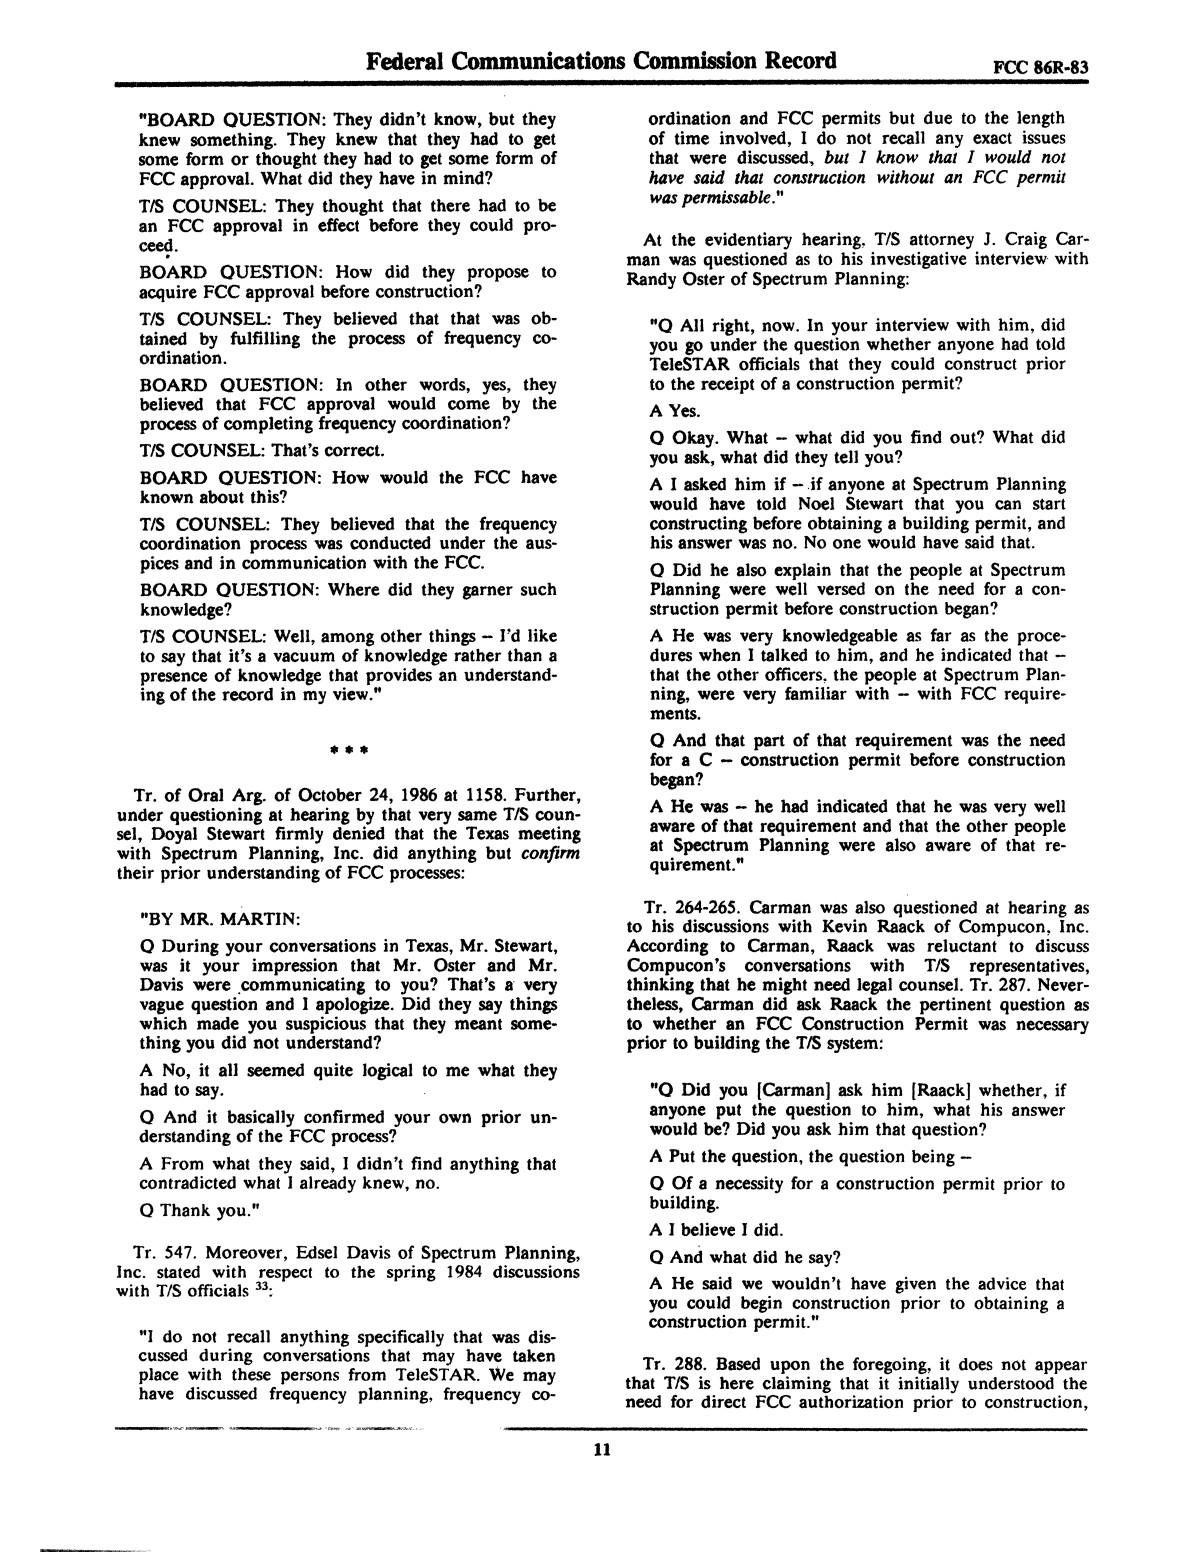 FCC Record, Volume 2, No. 1, Pages 1 to 409, January 5 - January 16, 1987                                                                                                      11